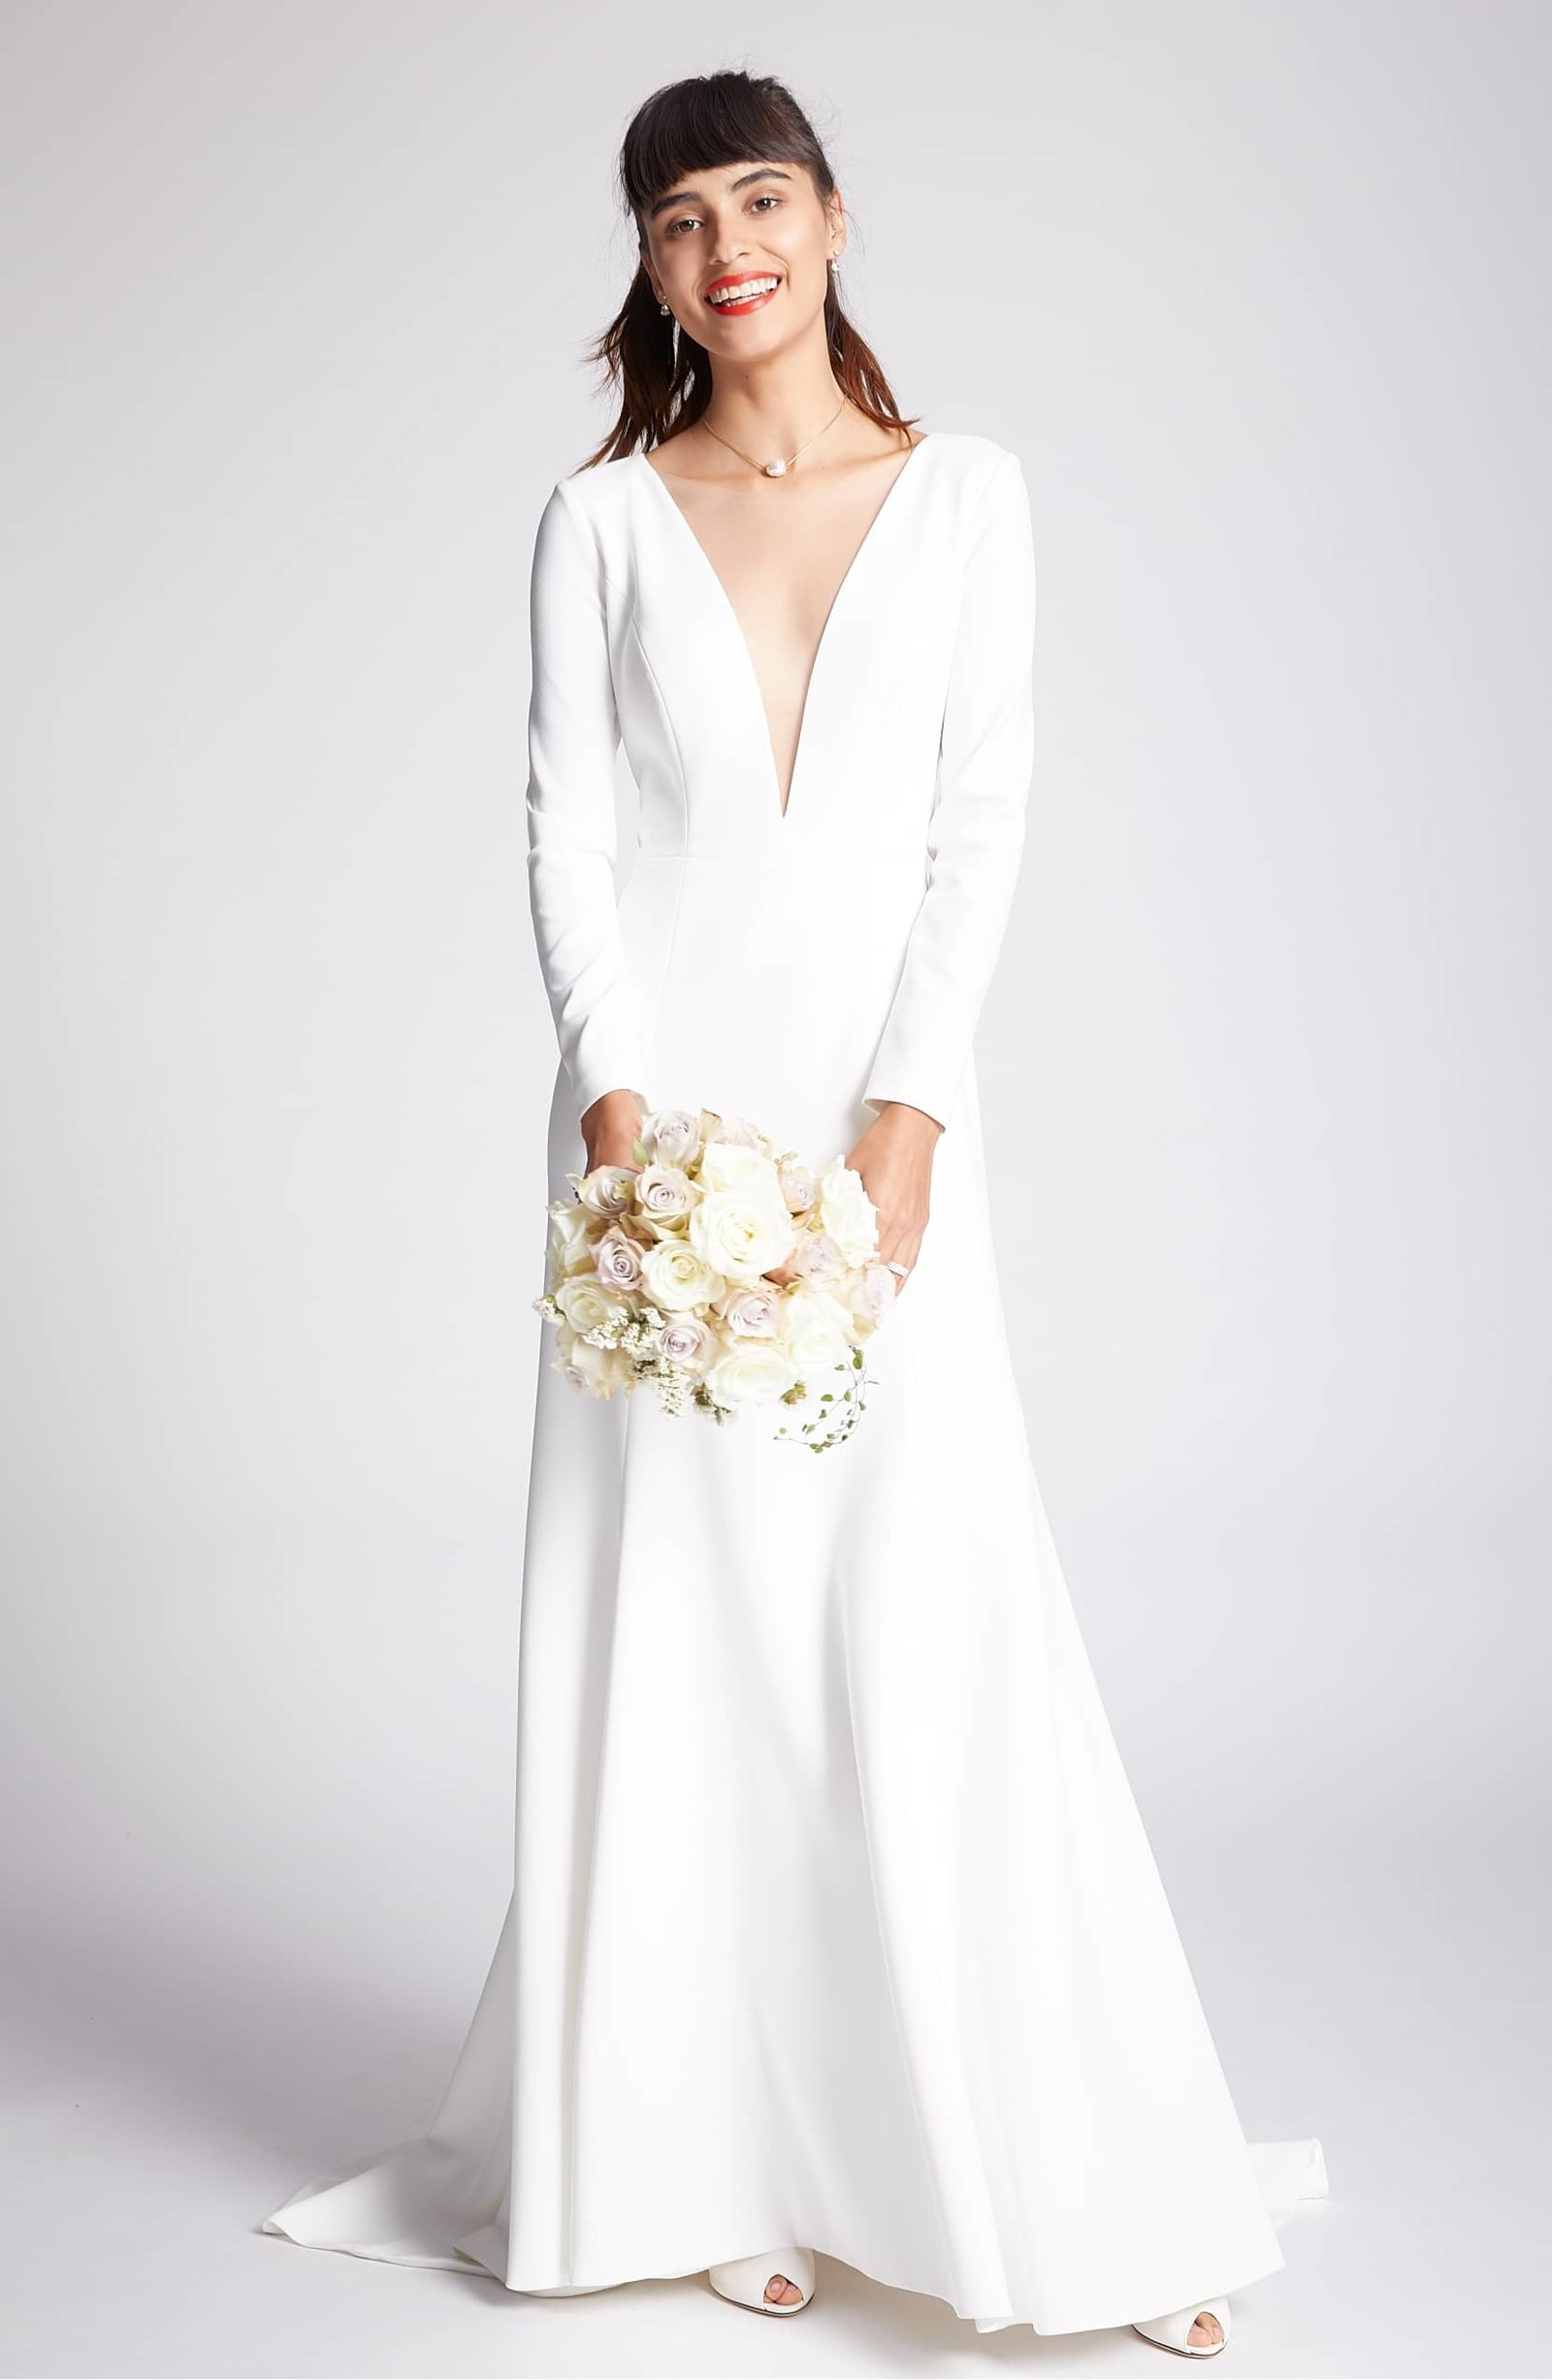 A wedding dress with a plunging neckline and a trendy cutout in the back  that will make your grandma blush — but she can t complain because IT HAS  SLEEVES! b5004397c